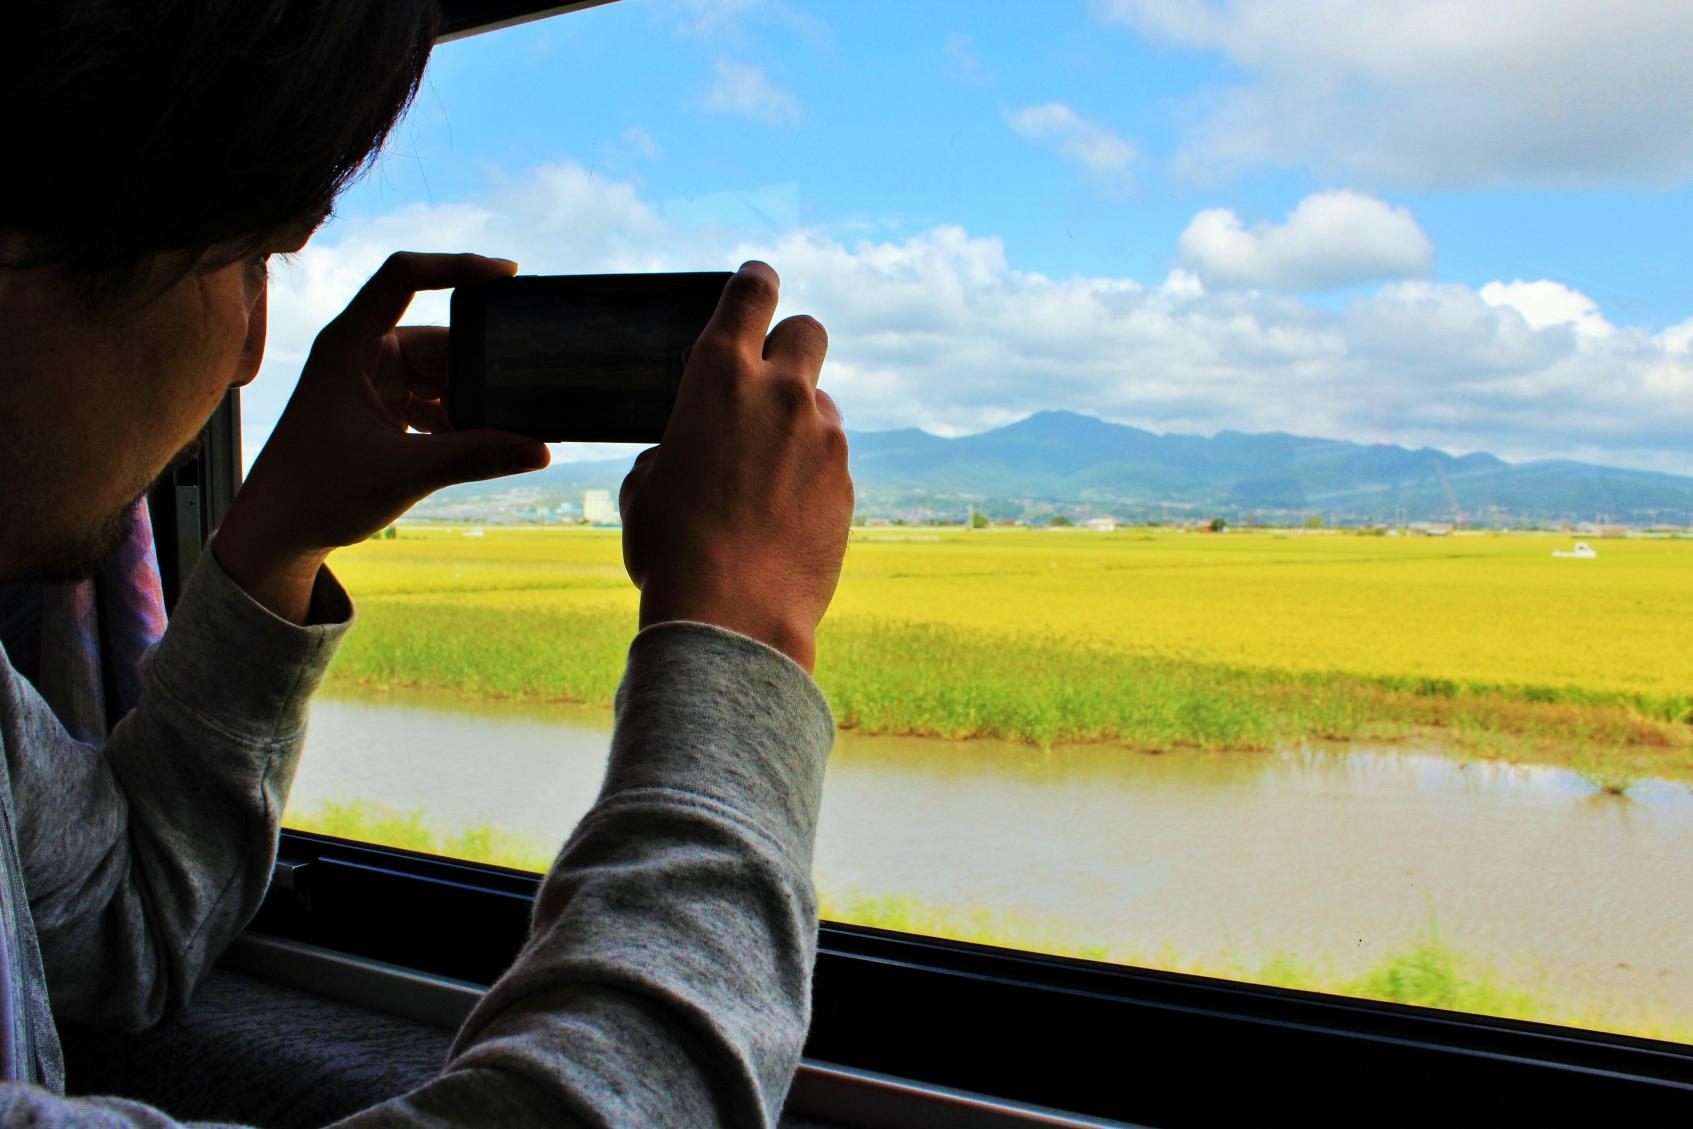 Shimabara Railway: A Train Ride with Spectacular Views-3